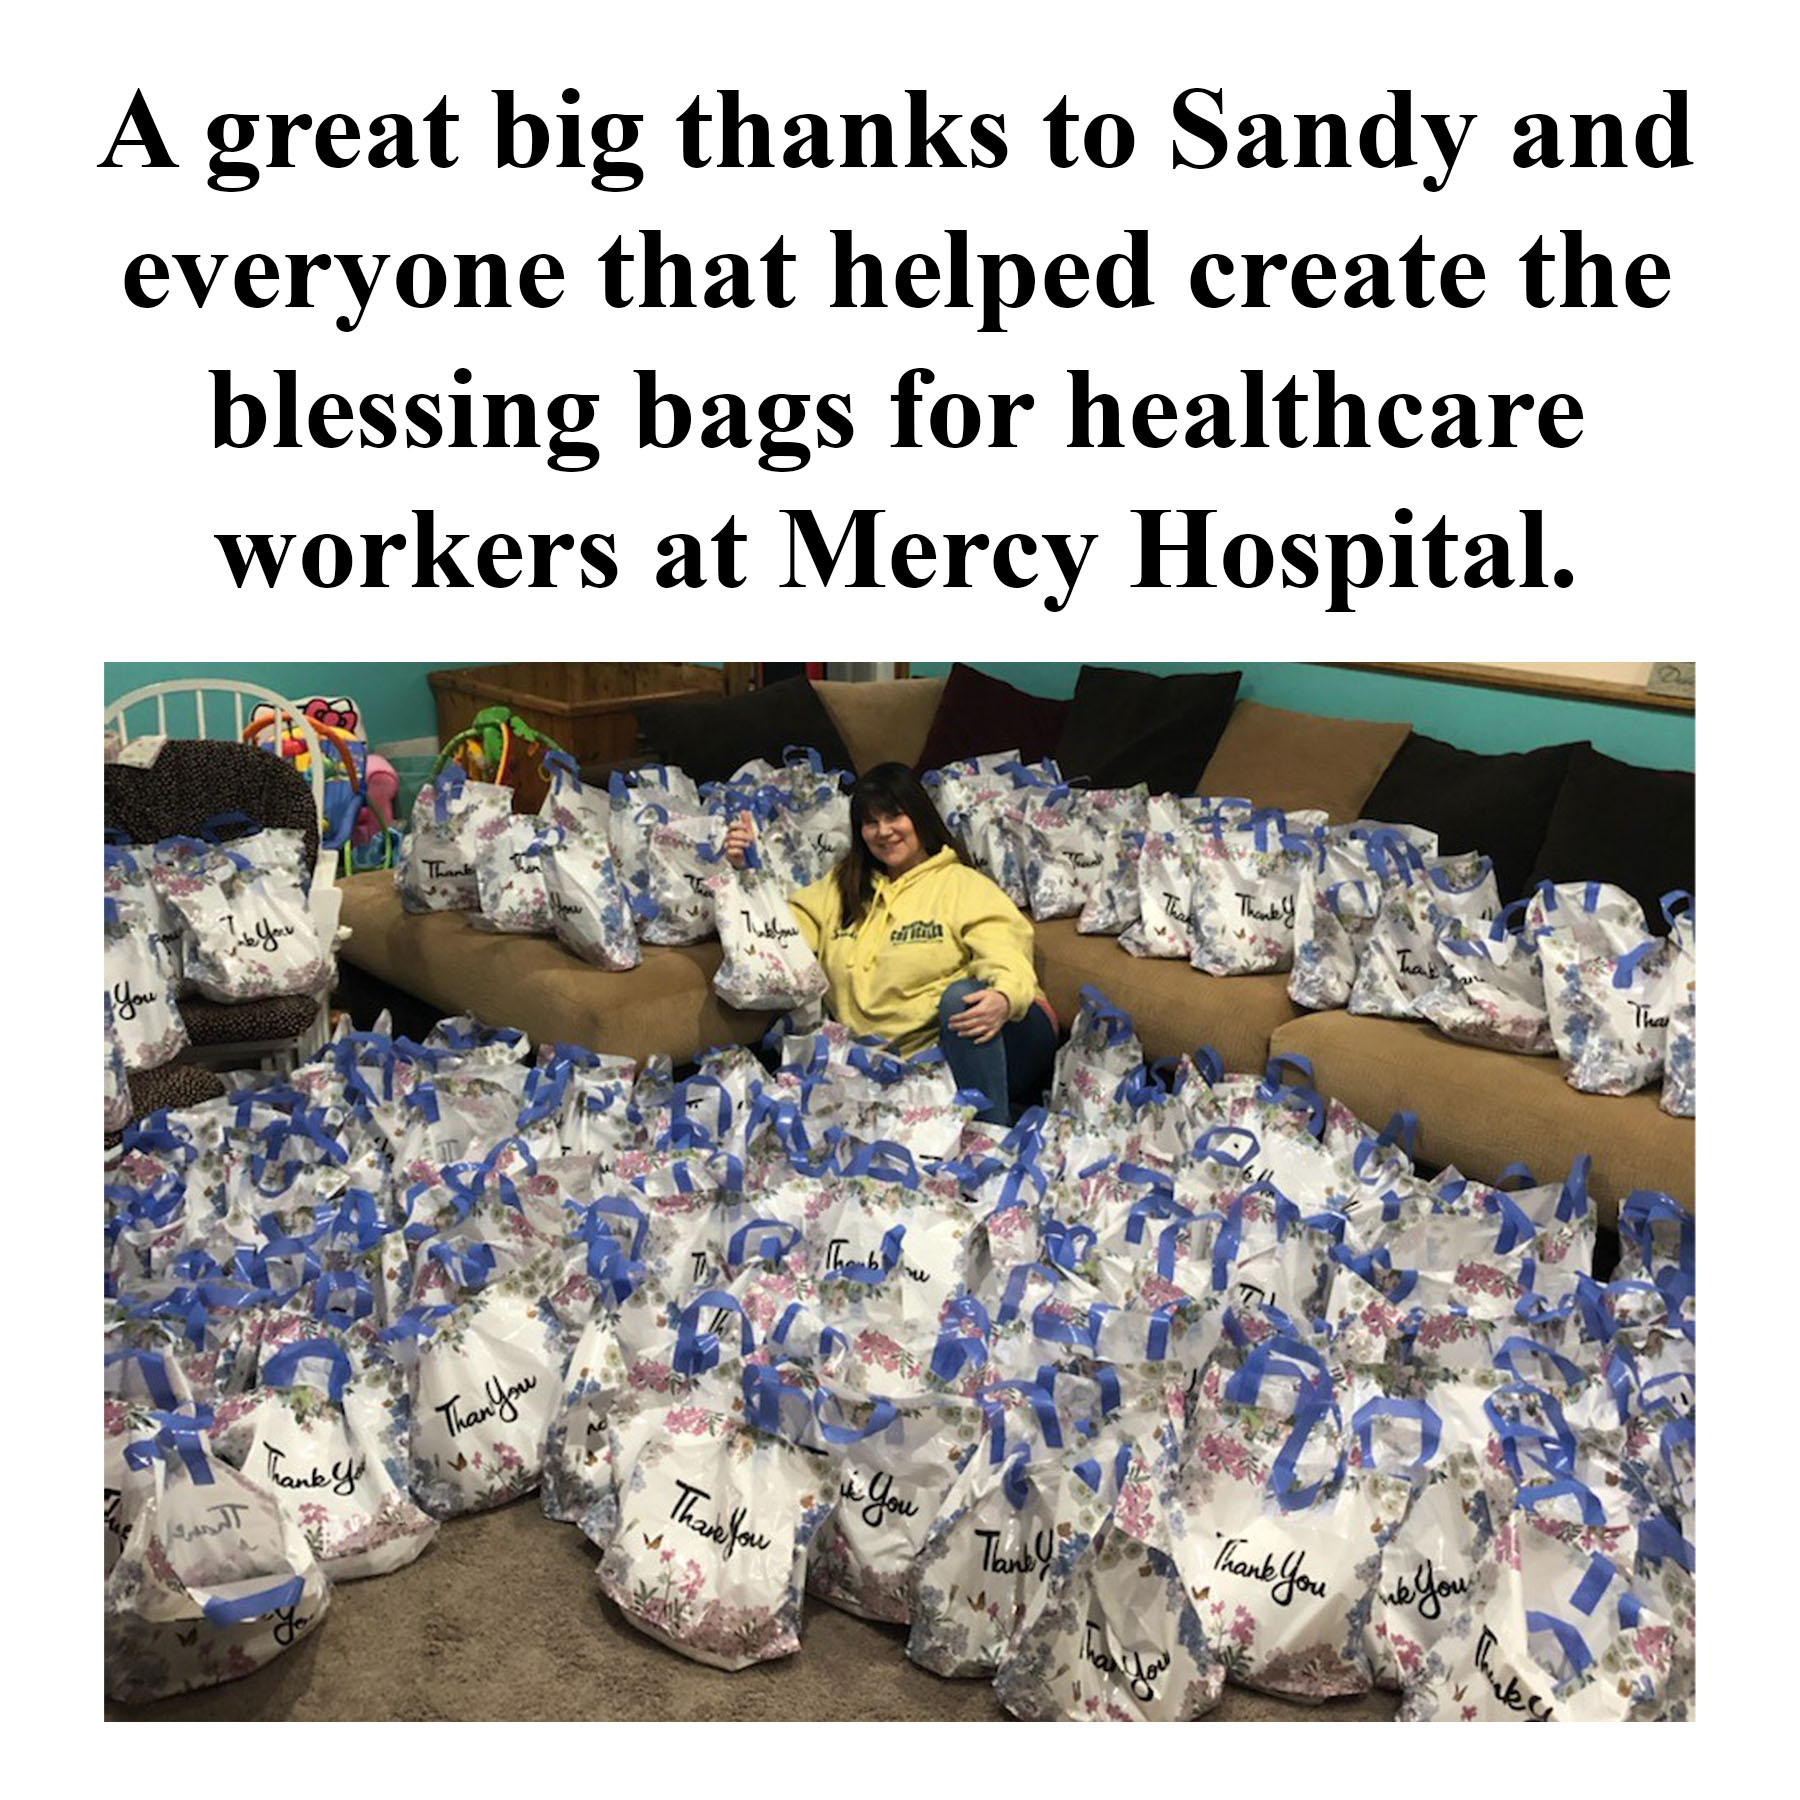 A great big thanks to Sandy and everyone that helped create the blessing bags for healthcare workers at Mercy Hospital.